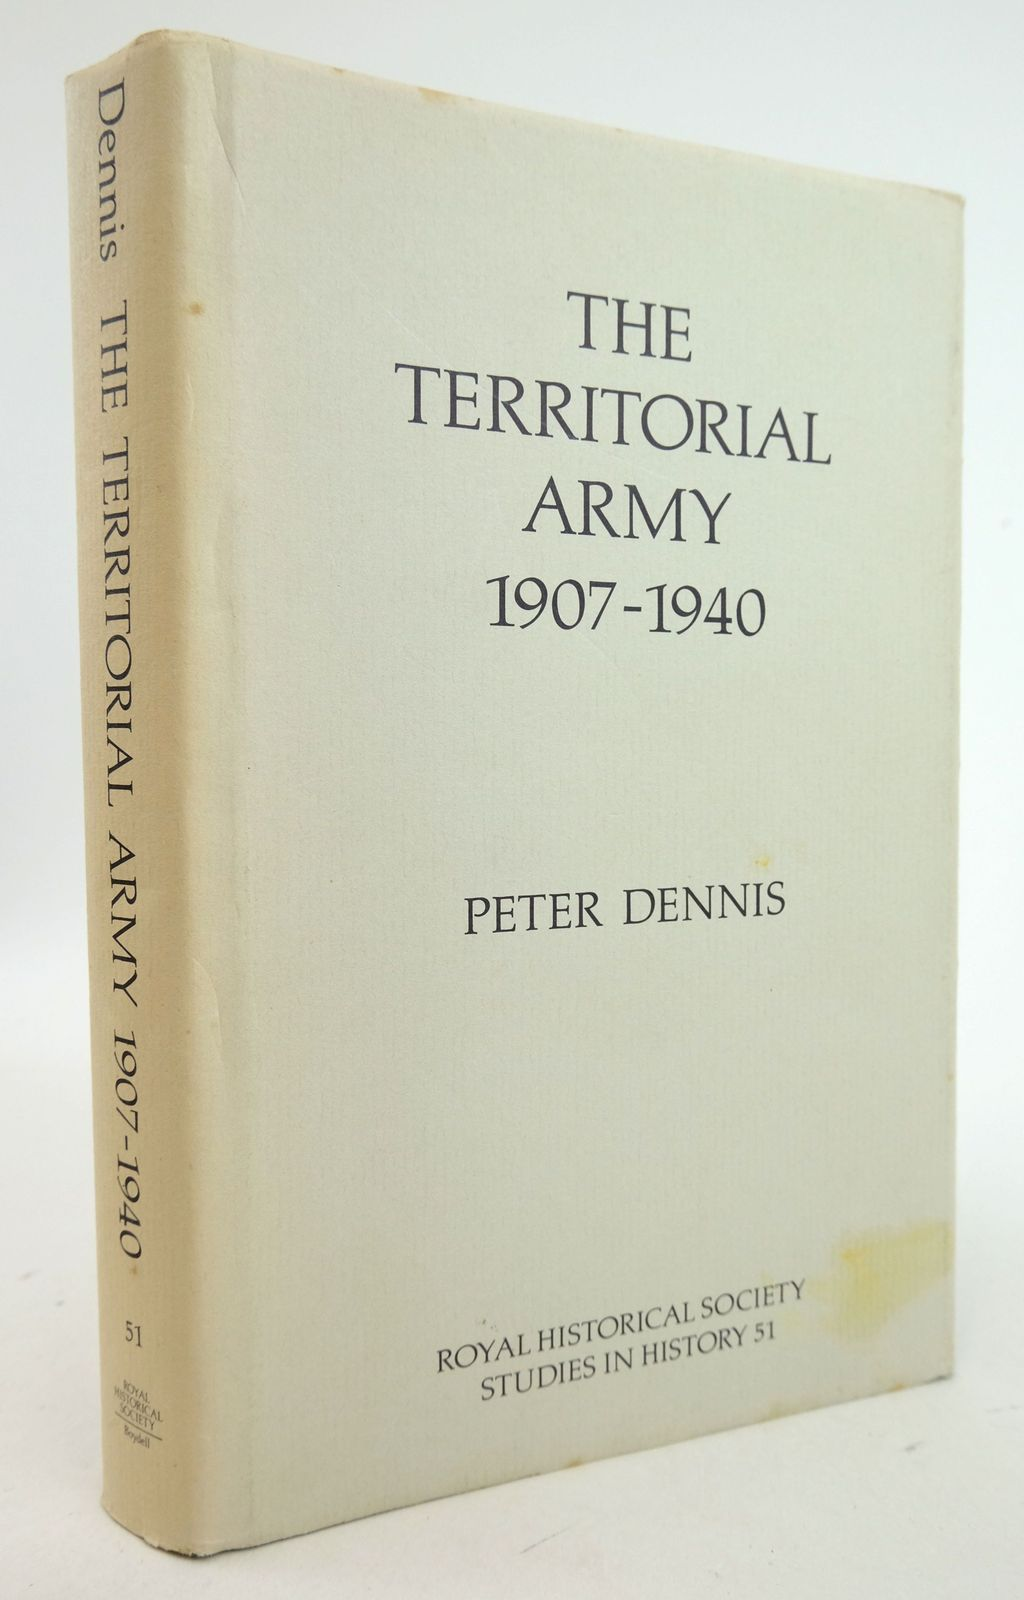 Photo of THE TERRITORIAL ARMY 1906-1940 written by Dennis, Peter published by The Boydell Press (STOCK CODE: 1819777)  for sale by Stella & Rose's Books